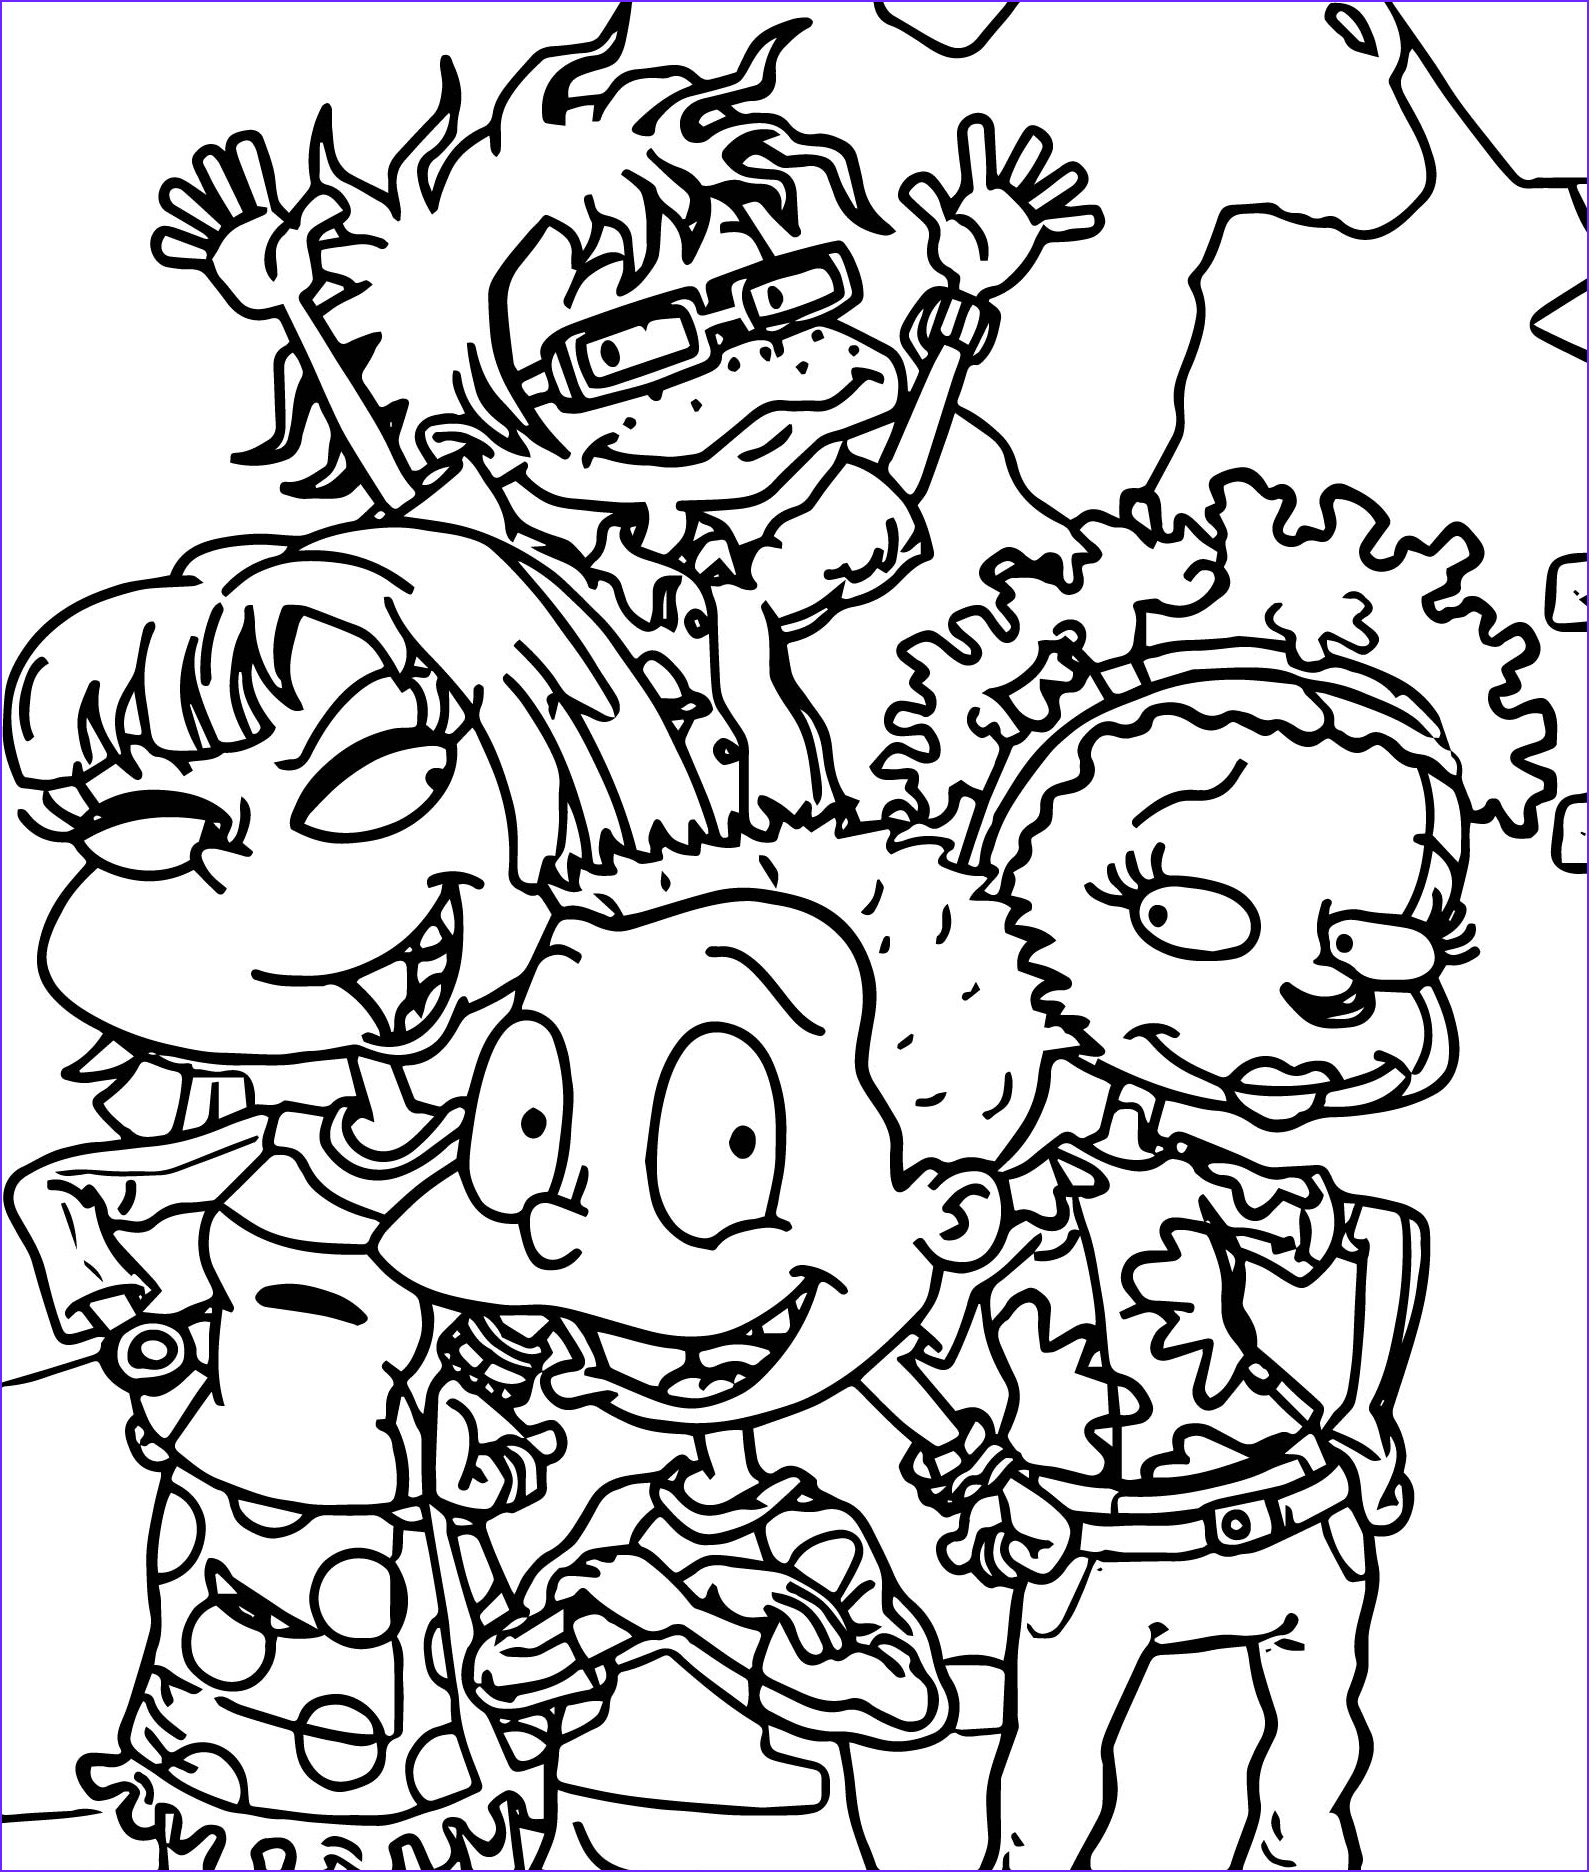 rugrats all grown up all grown up coloring page